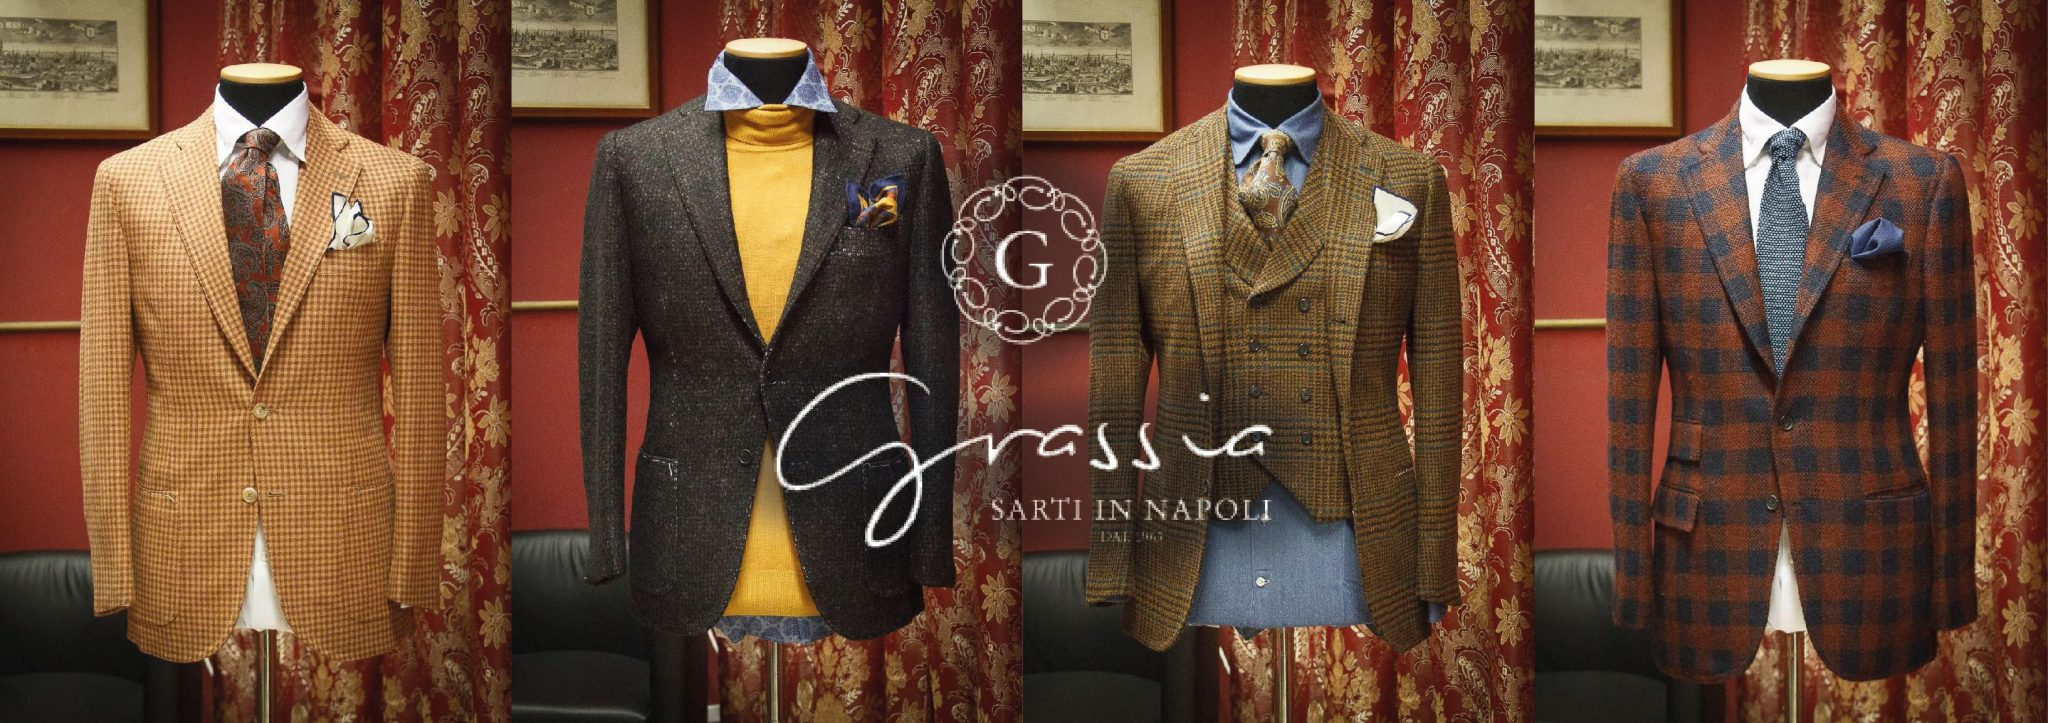 La Sartoria Grassia « Pop-Up Workshop »